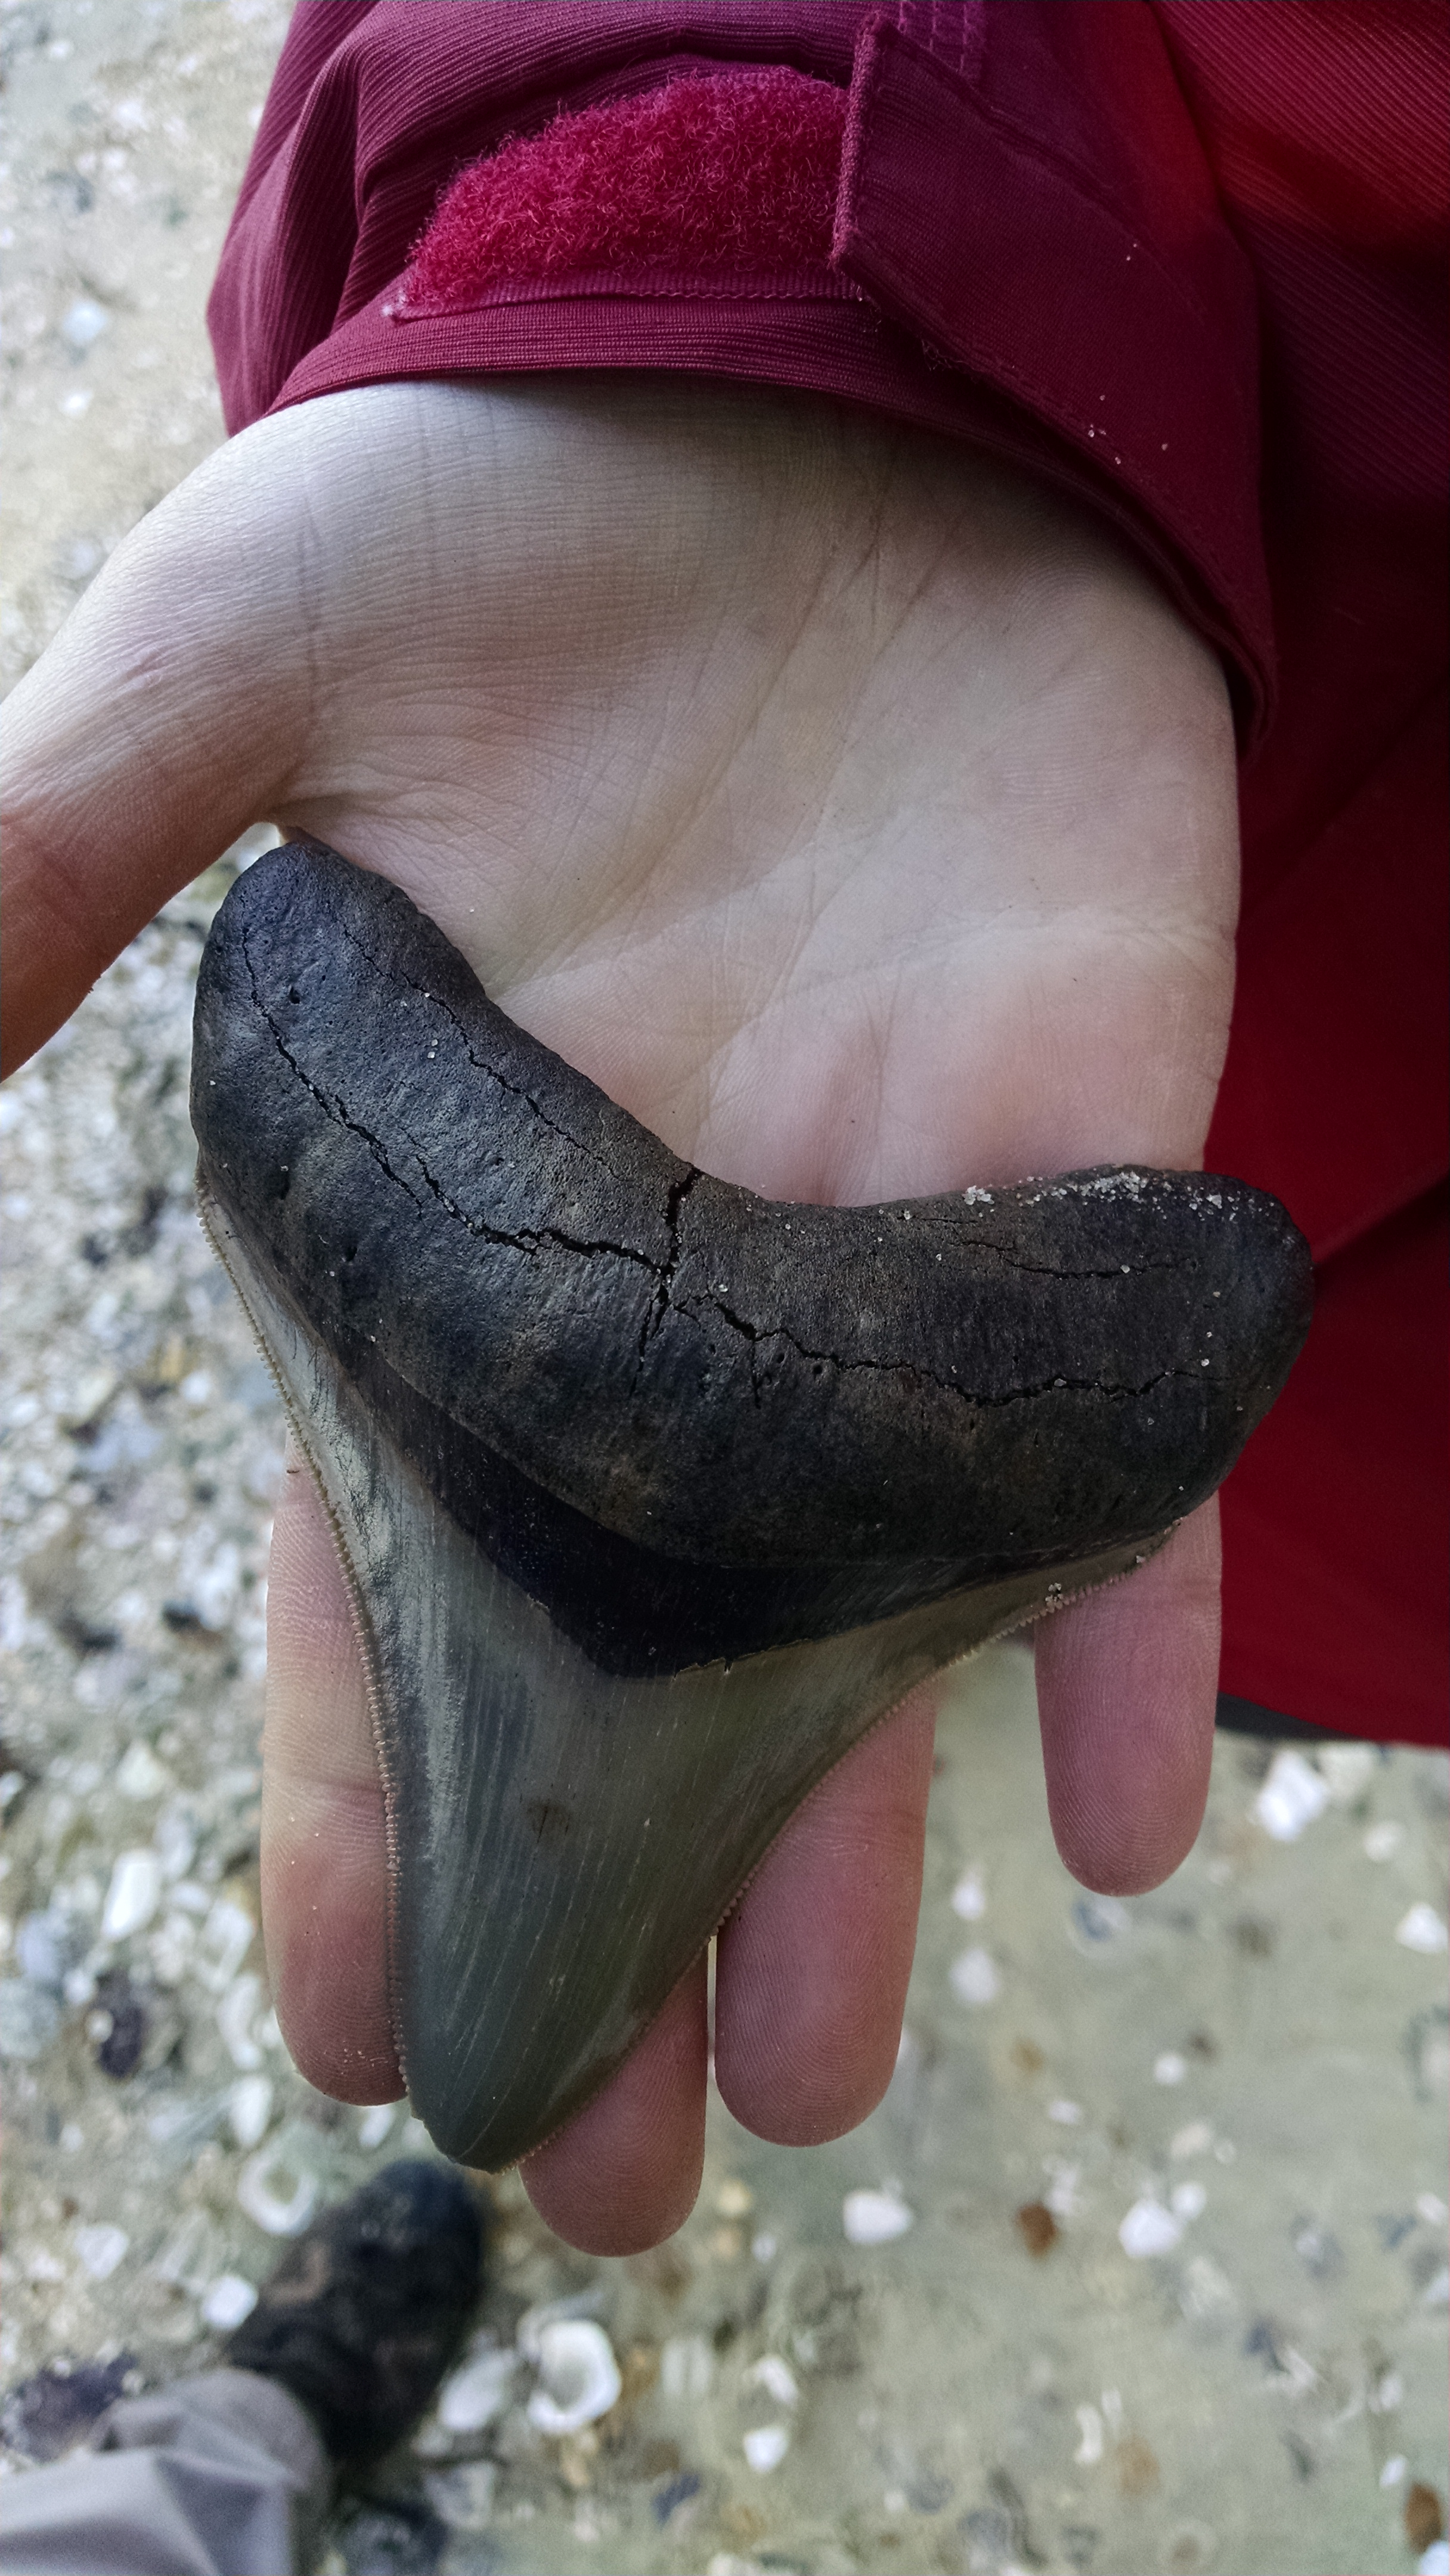 Jackie Geisler's remarkable megalodon tooth, a remarkable rarity spotted by her watchful eye!